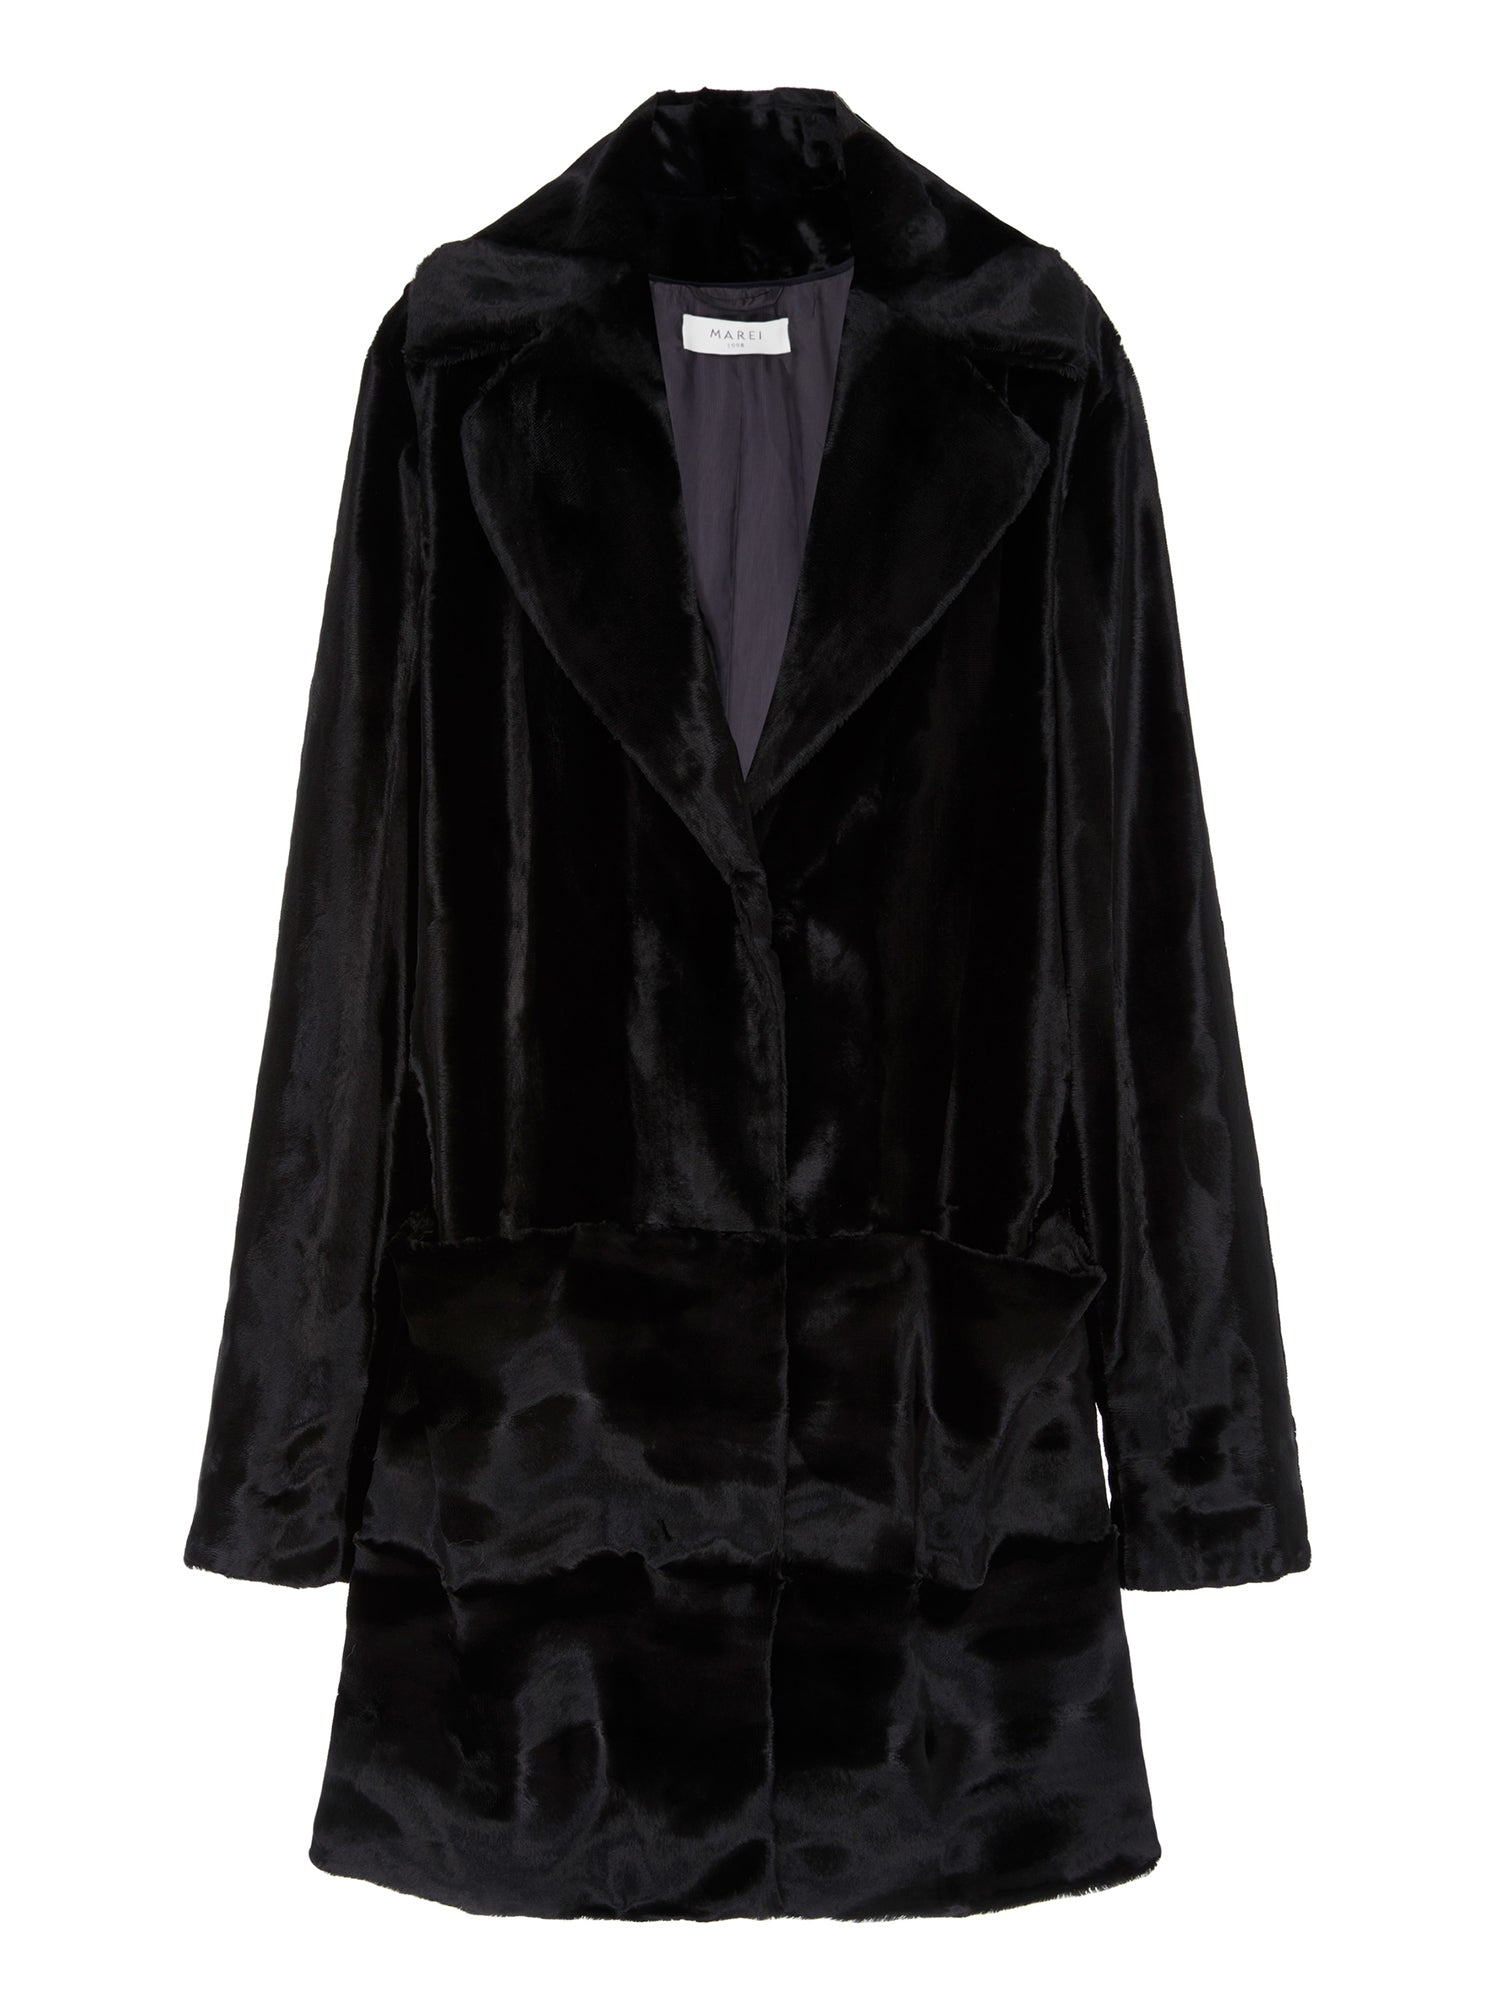 A Packshot Of Marei1998 Begonia Coat In Black Color. This Unique Design Is Crafted From Italian Velvet Texture Fabric In Lustrous Black Color. Cut In A Slight Oversized Shape, Enhanced By Deep Neckline And Dropped Shoulders, This Coat Is An Ideal Winter Piece. The Smart Silhouette And Minimalist Design Result In A Classic Signature Style. Front View.